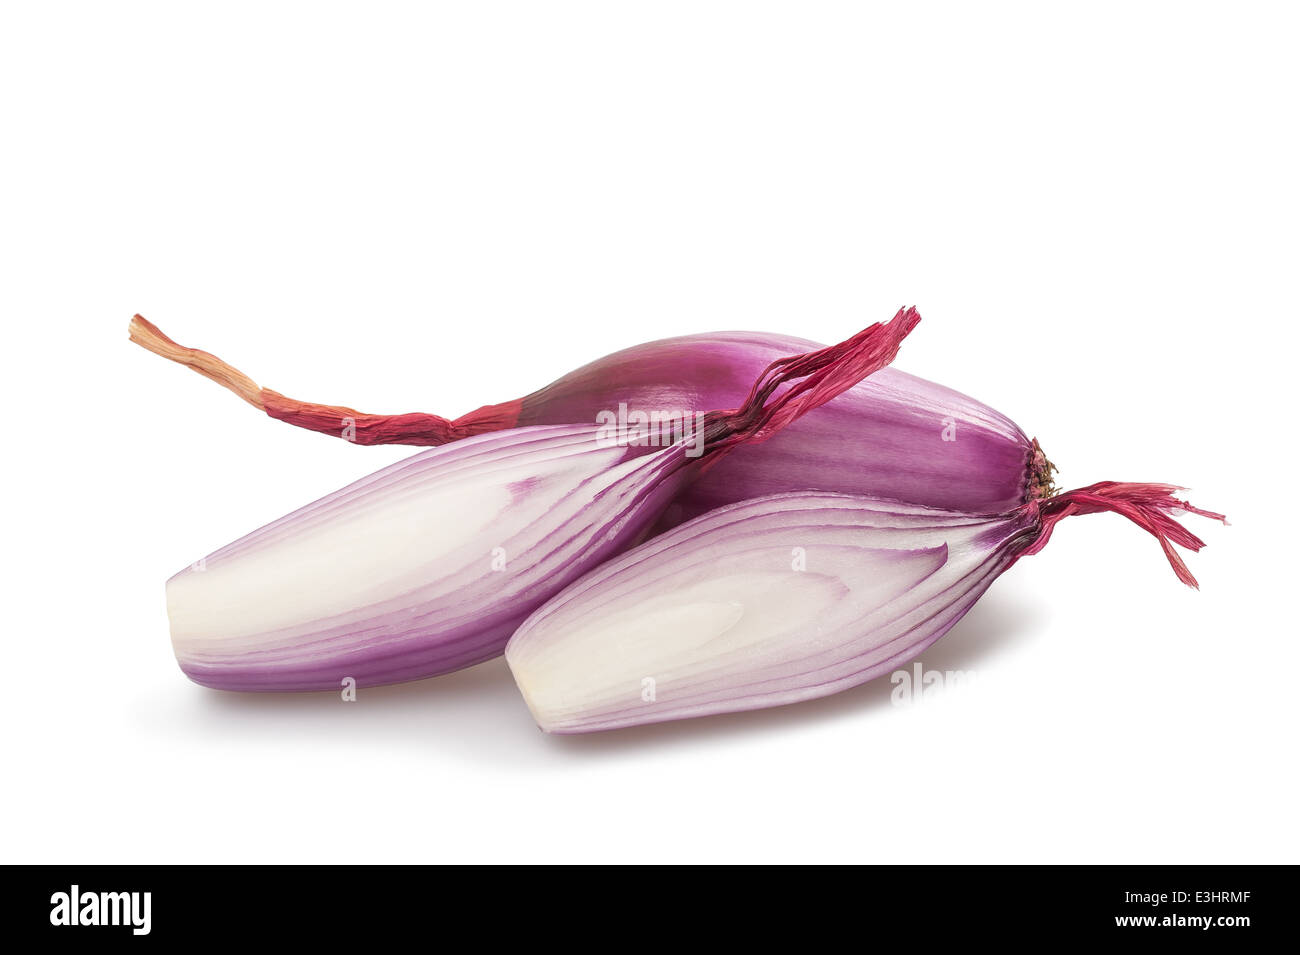 Red onions sliced isolated on white - Stock Image